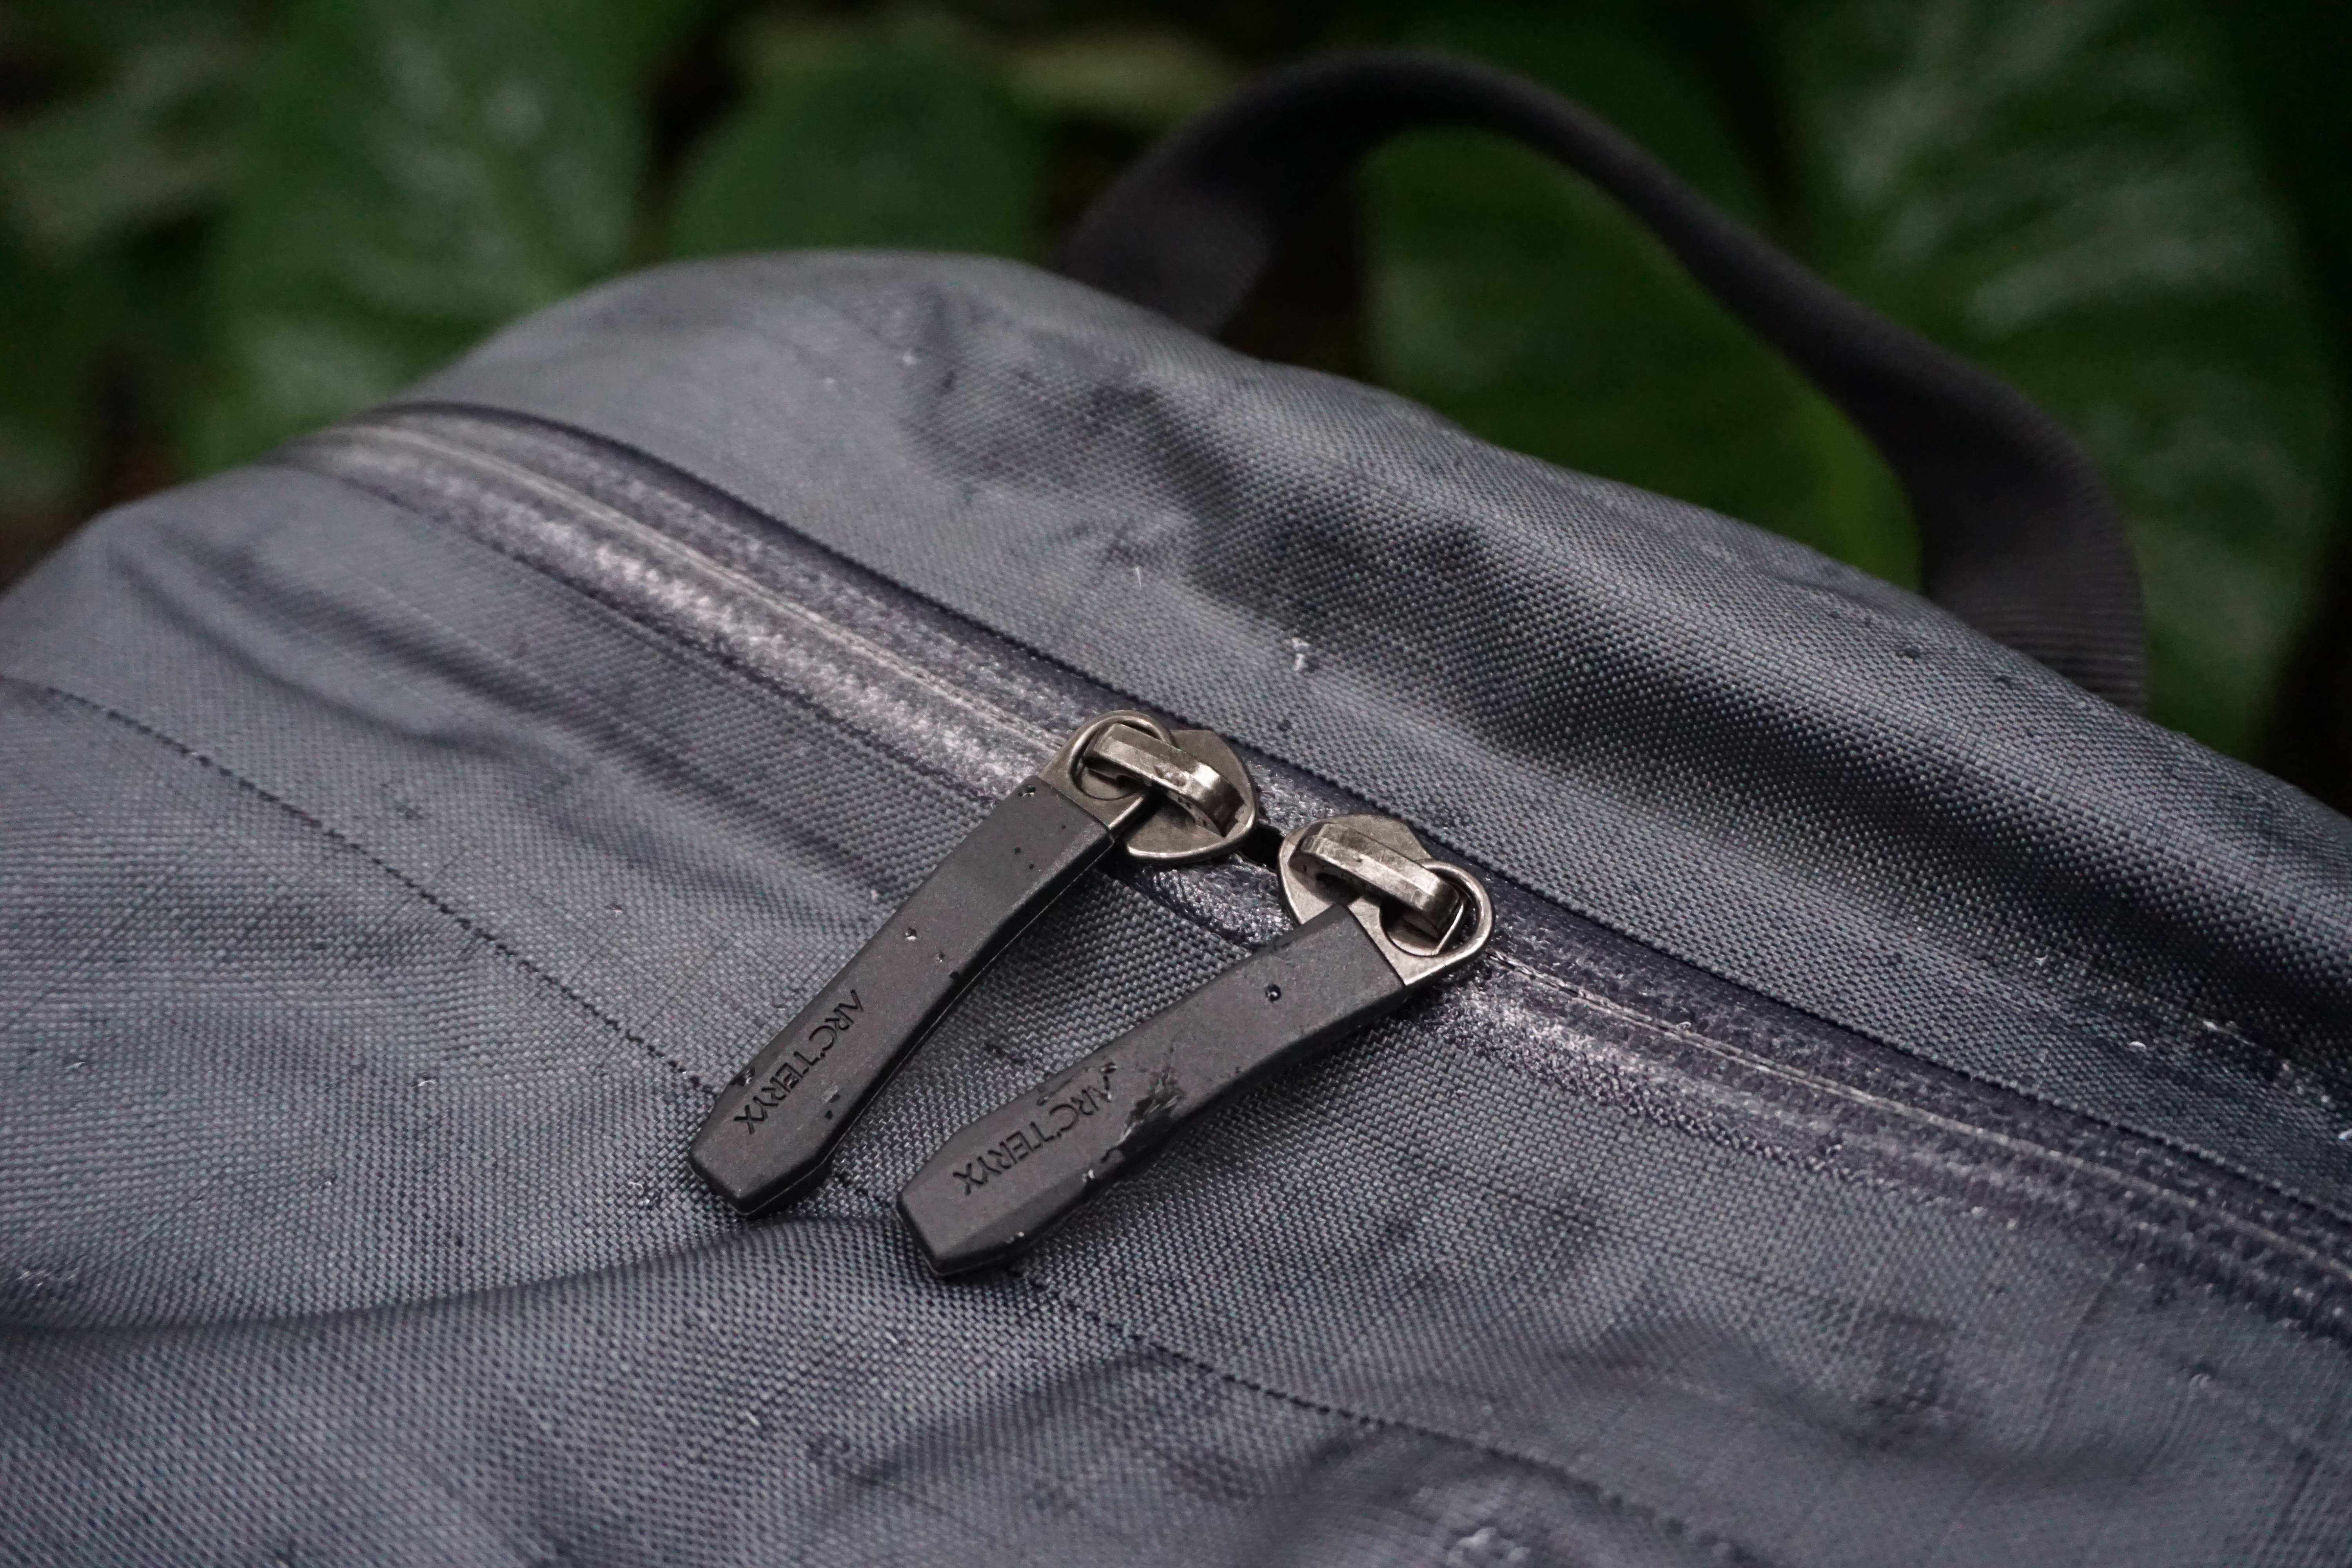 Arc'teryx Granville Zip 16 zipper pulls detail water resistant weather resistant zippers